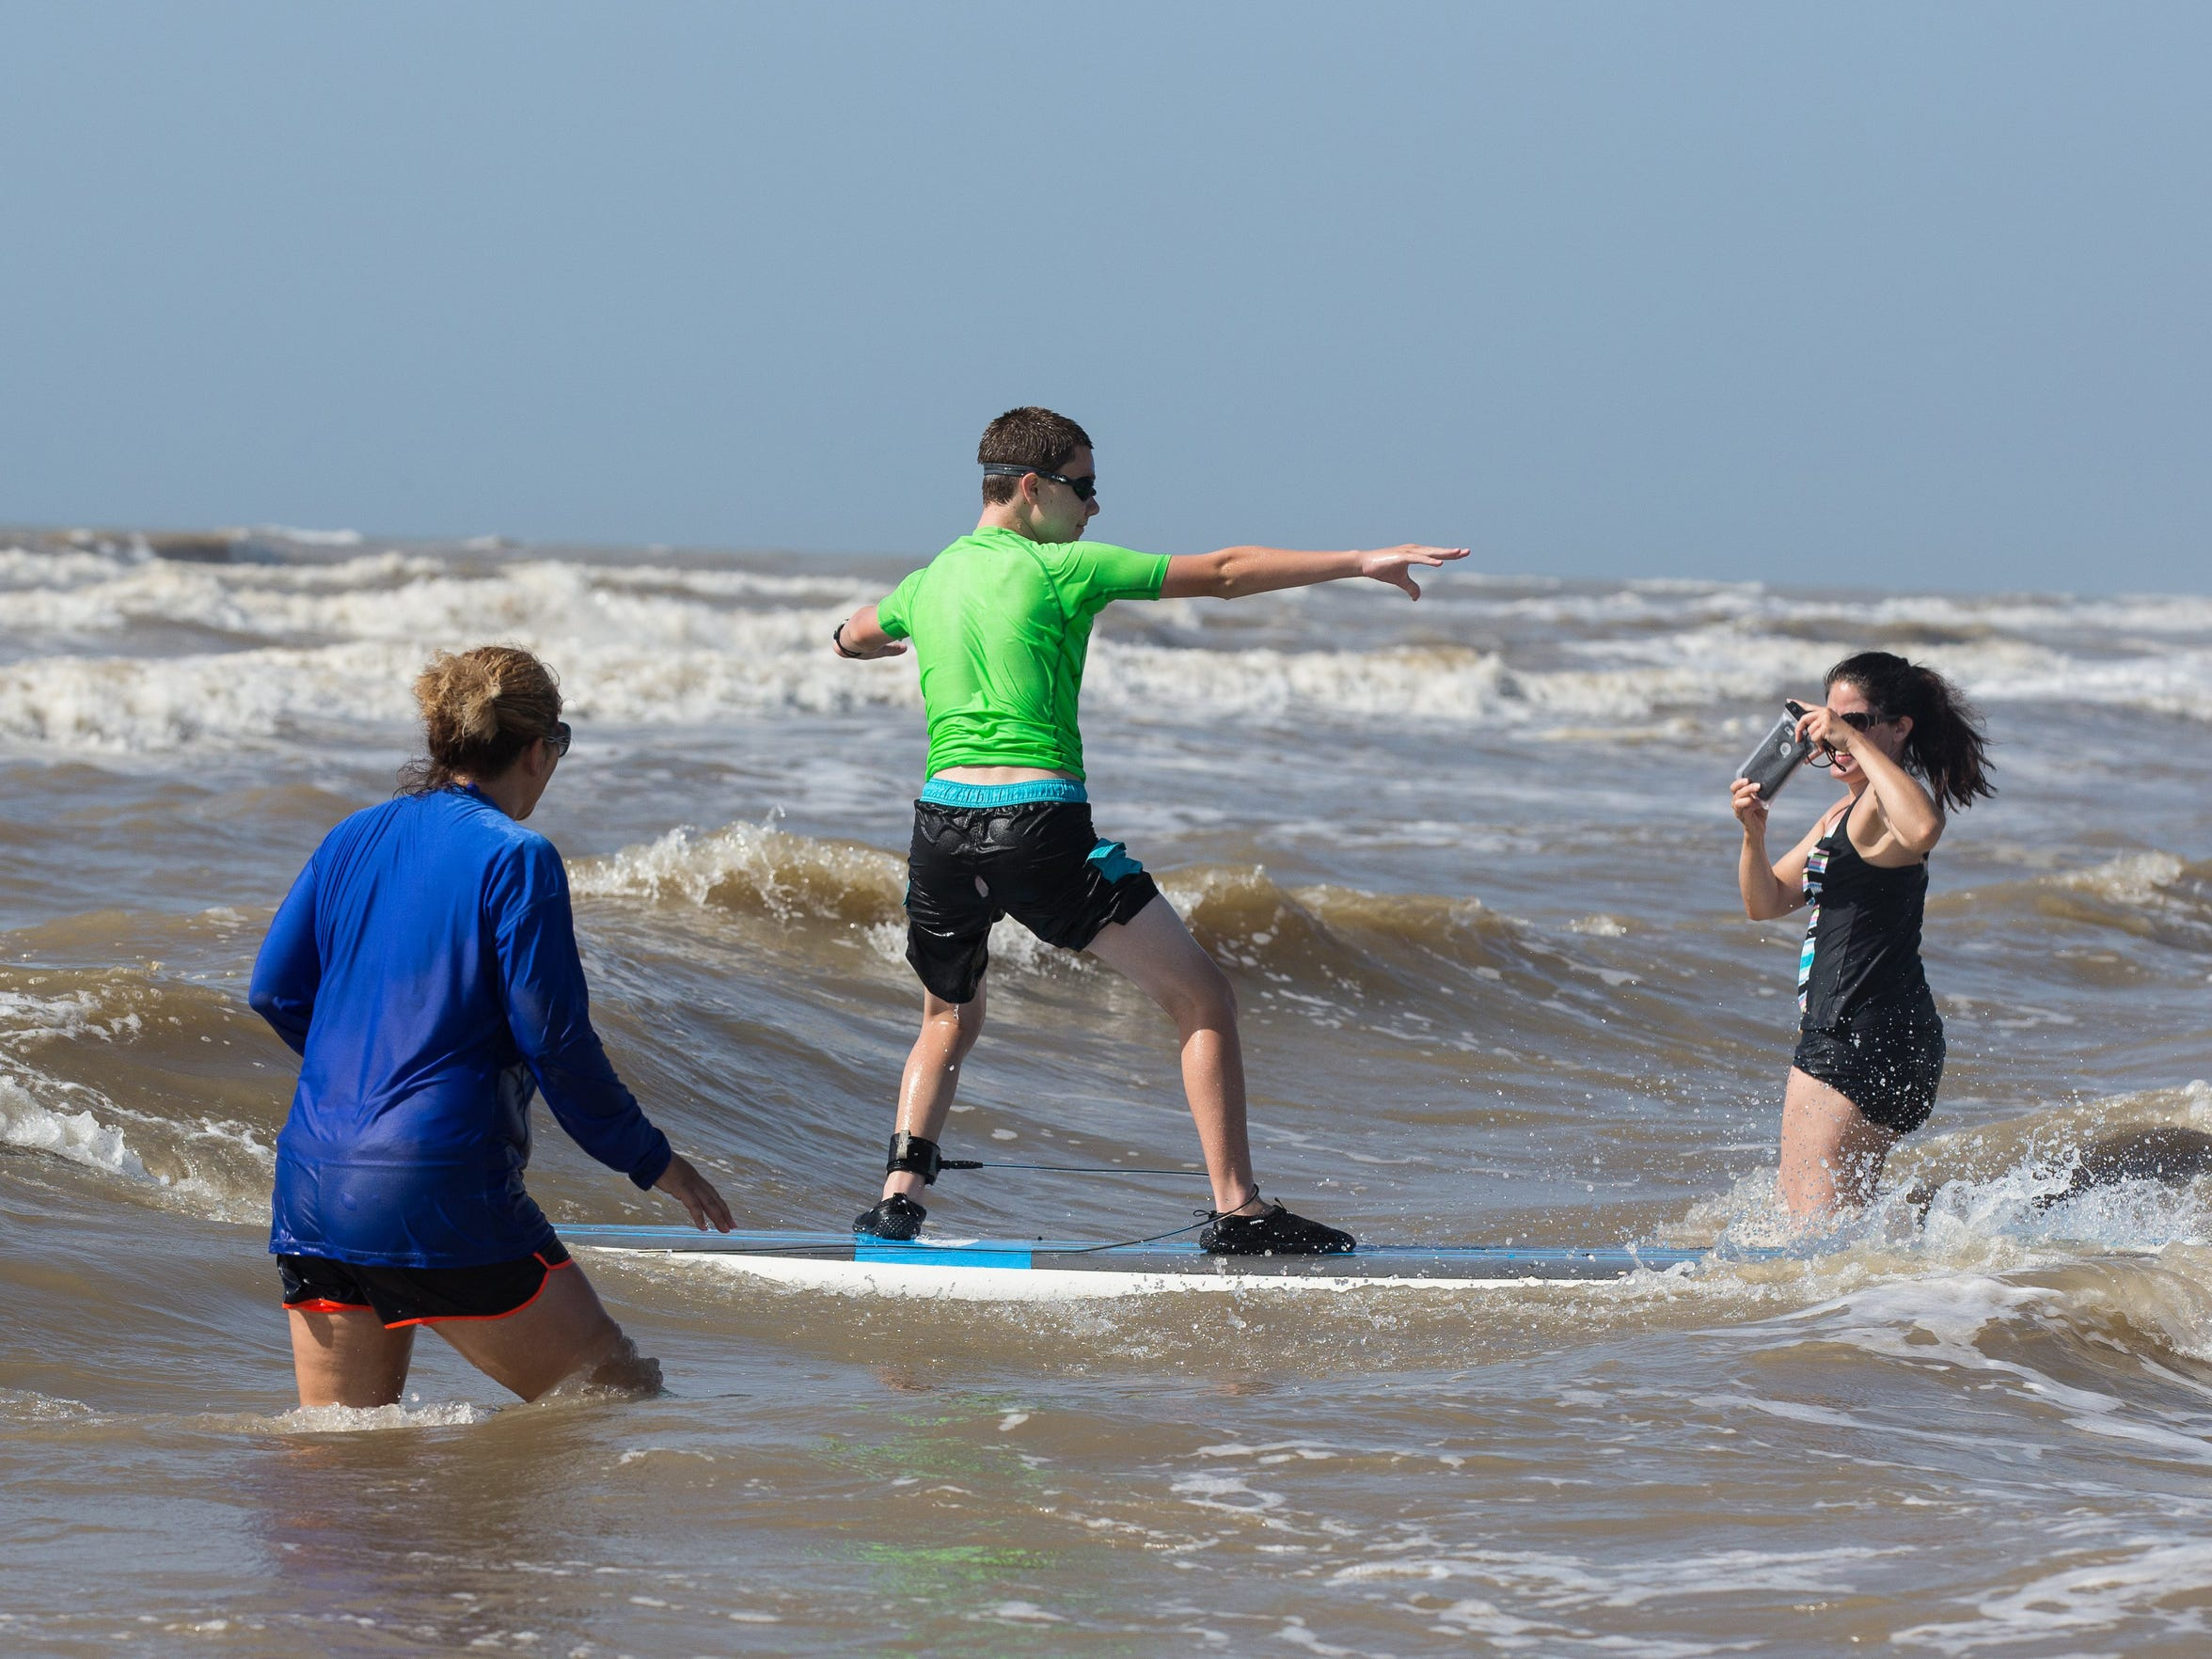 Kids 6 and older can learn to surf at Texas Surf Camps